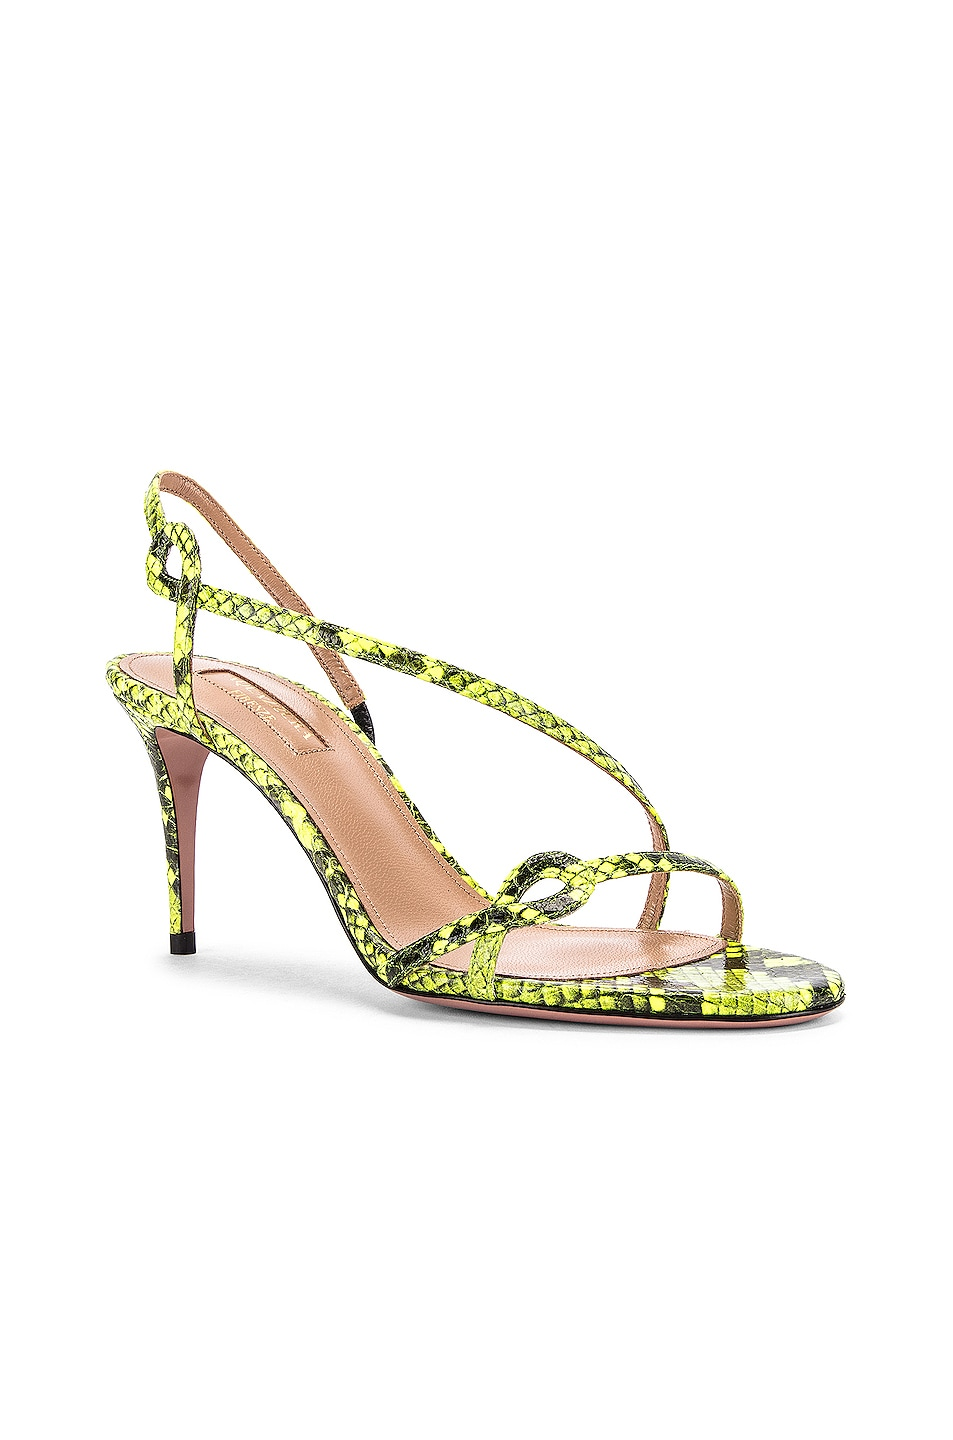 Image 2 of Aquazzura Serpentine 75 Sandal in Acid Green